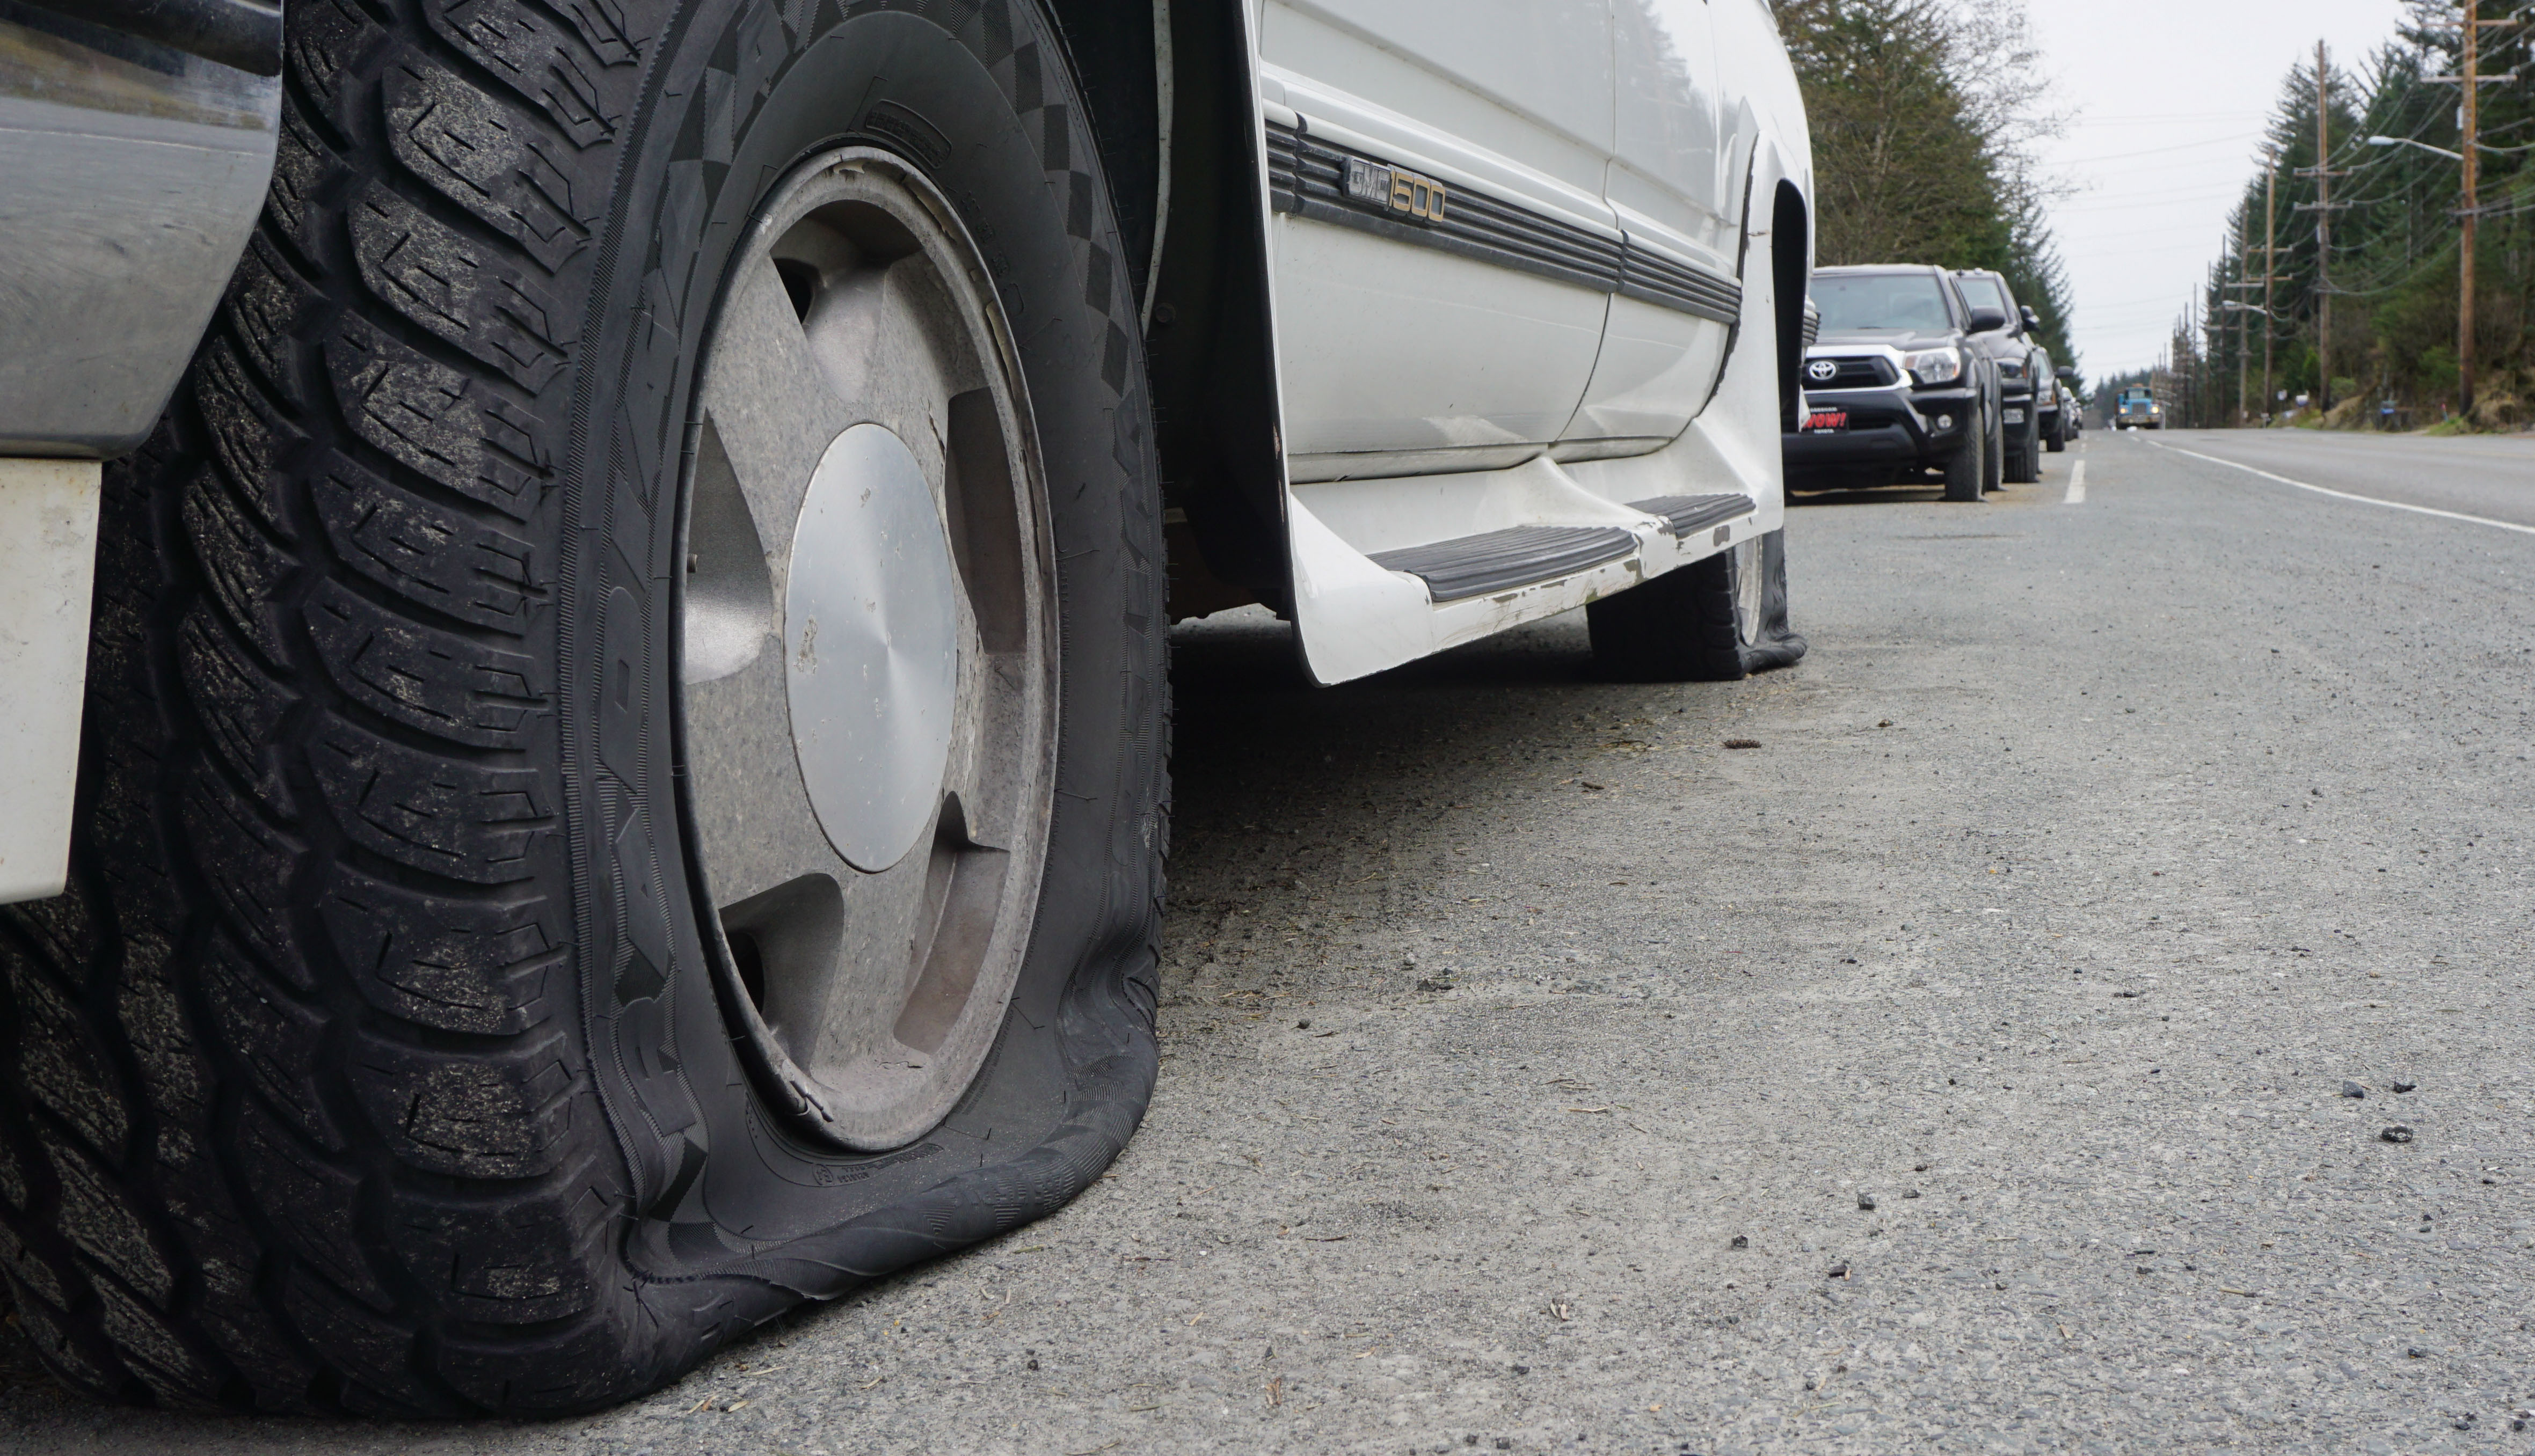 Residents Uneasy Over Mass Tire Slashing In Douglas And West Juneau